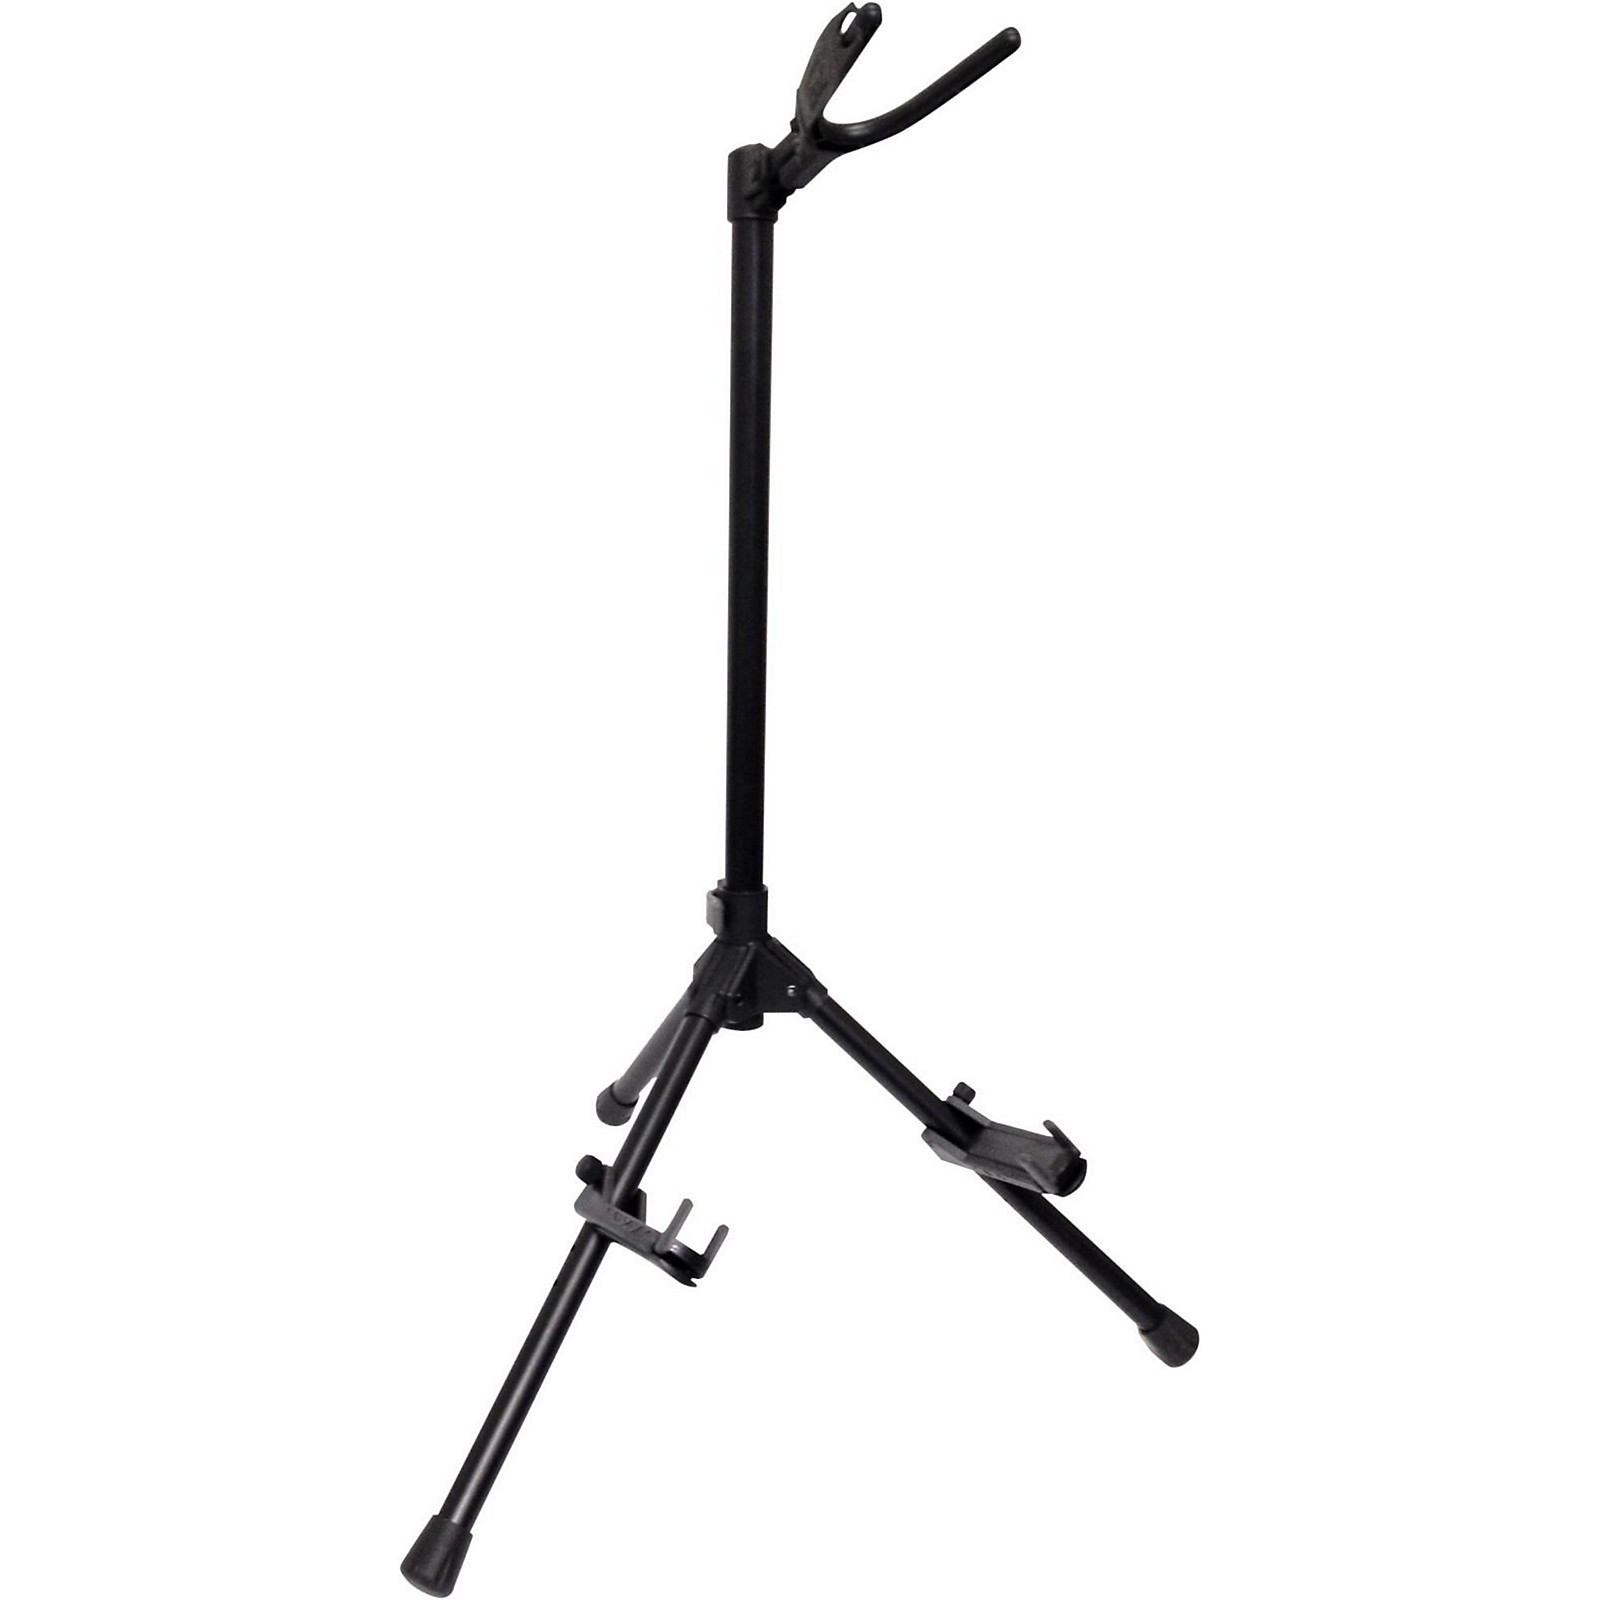 Peak Music Stands SG-20 A-Frame Guitar Stand